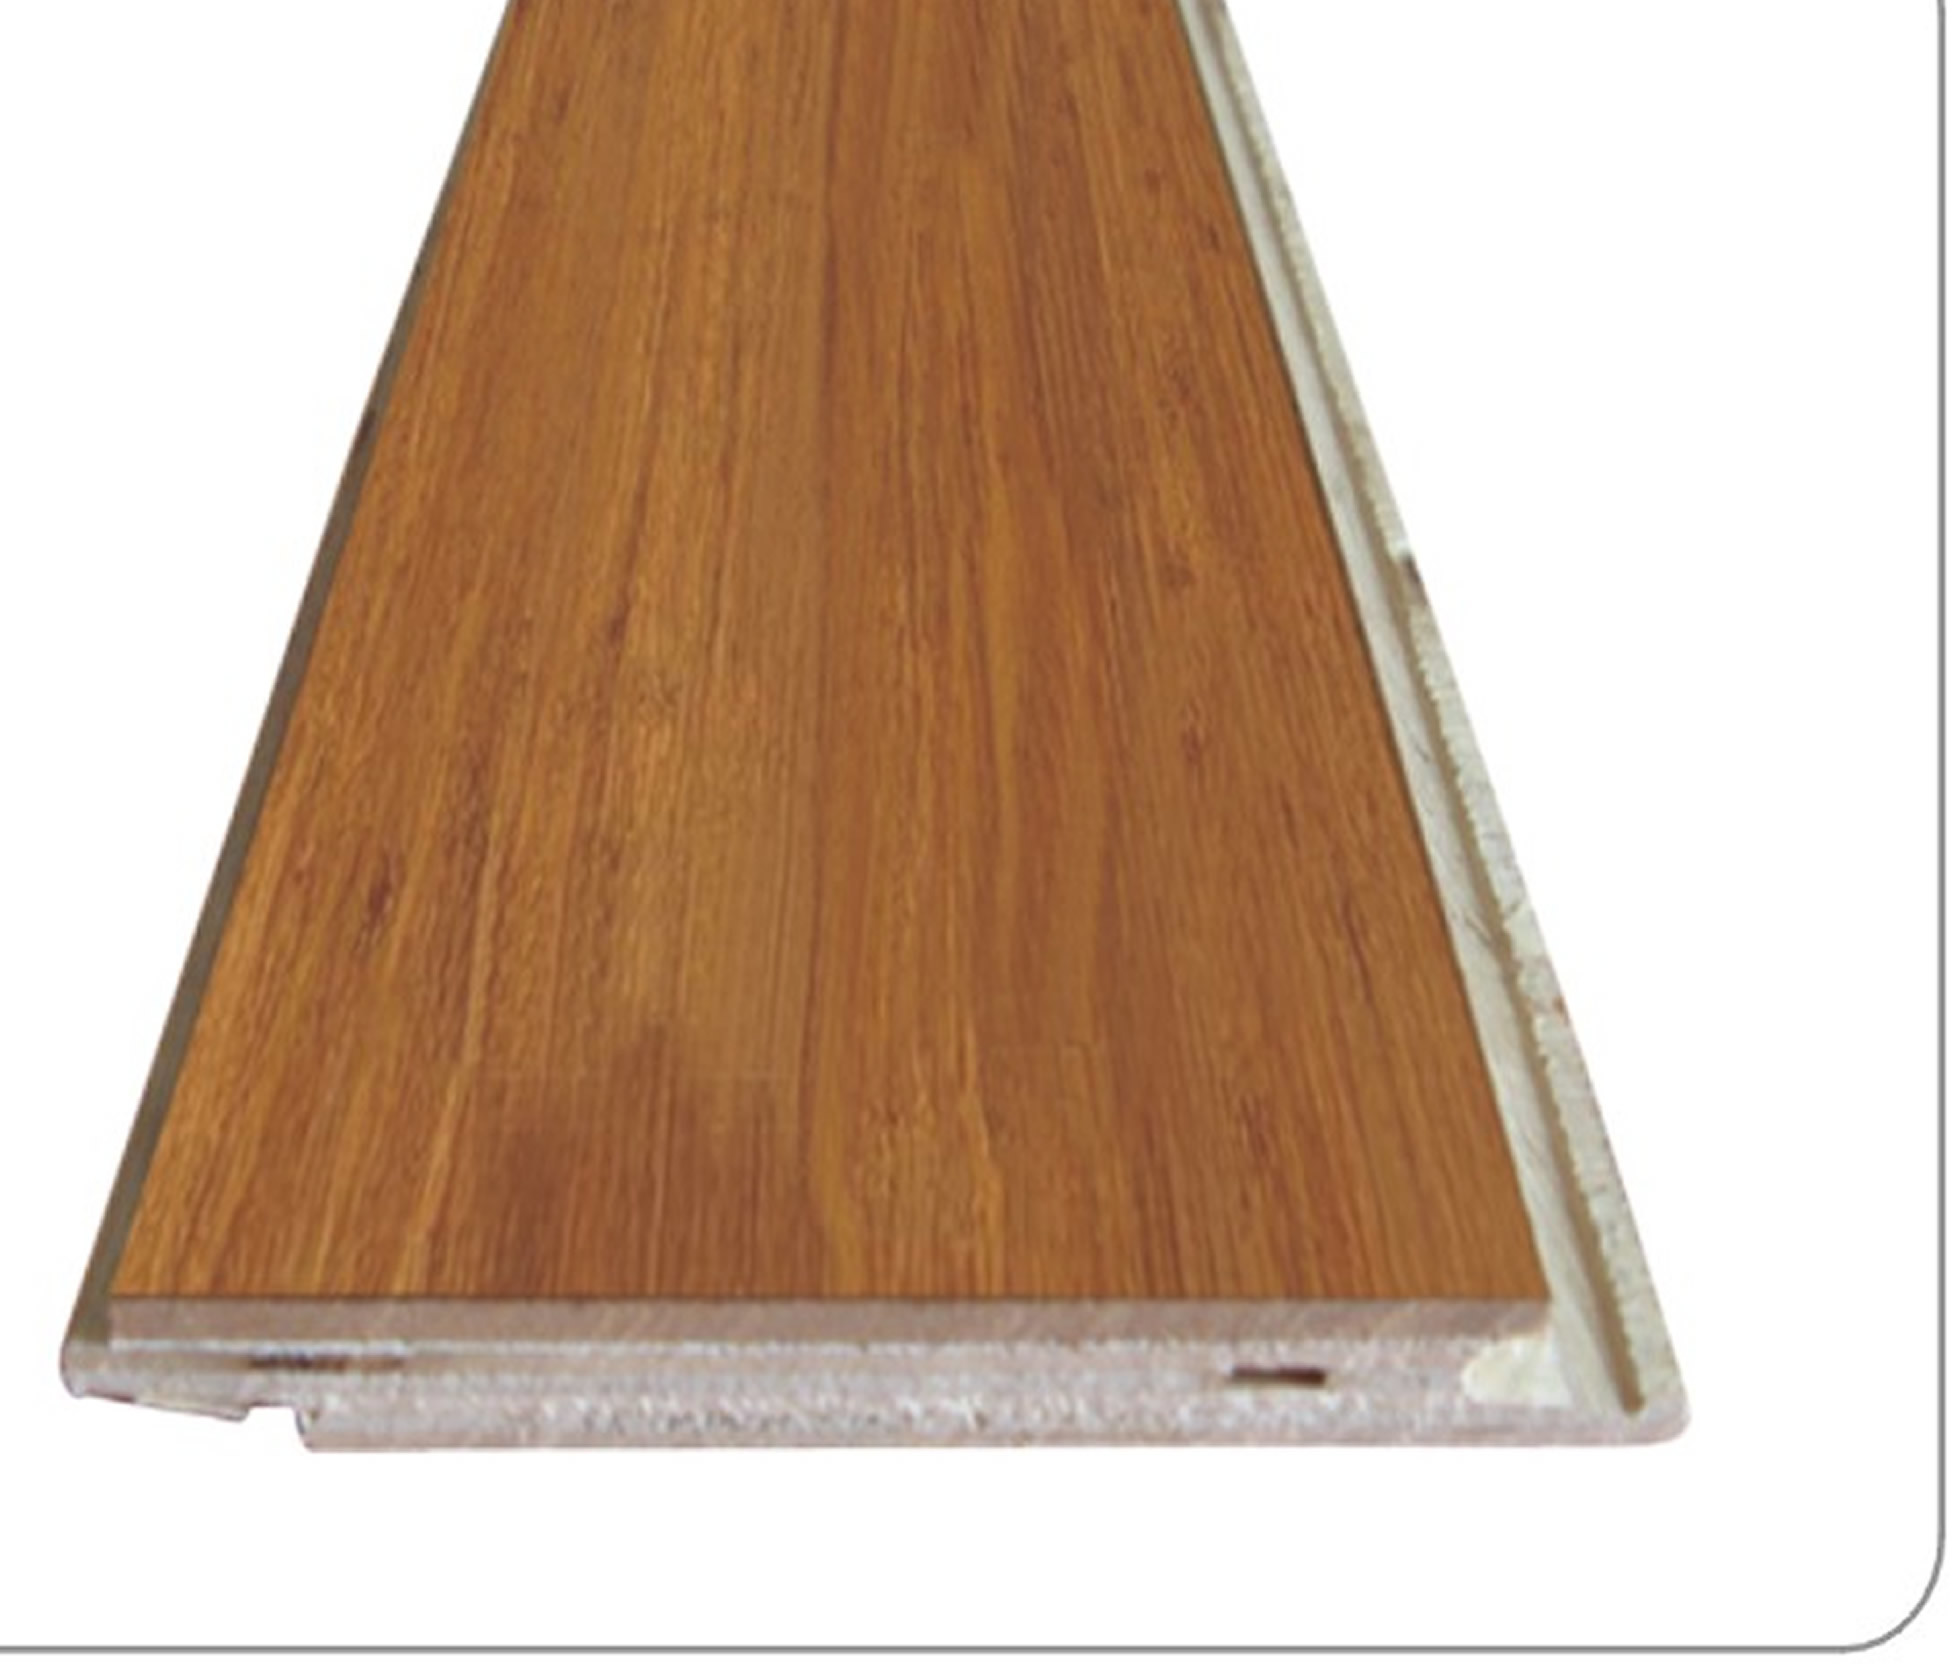 Bamboo flooring engineered bamboo floor for Bamboo flooring outdoor decking